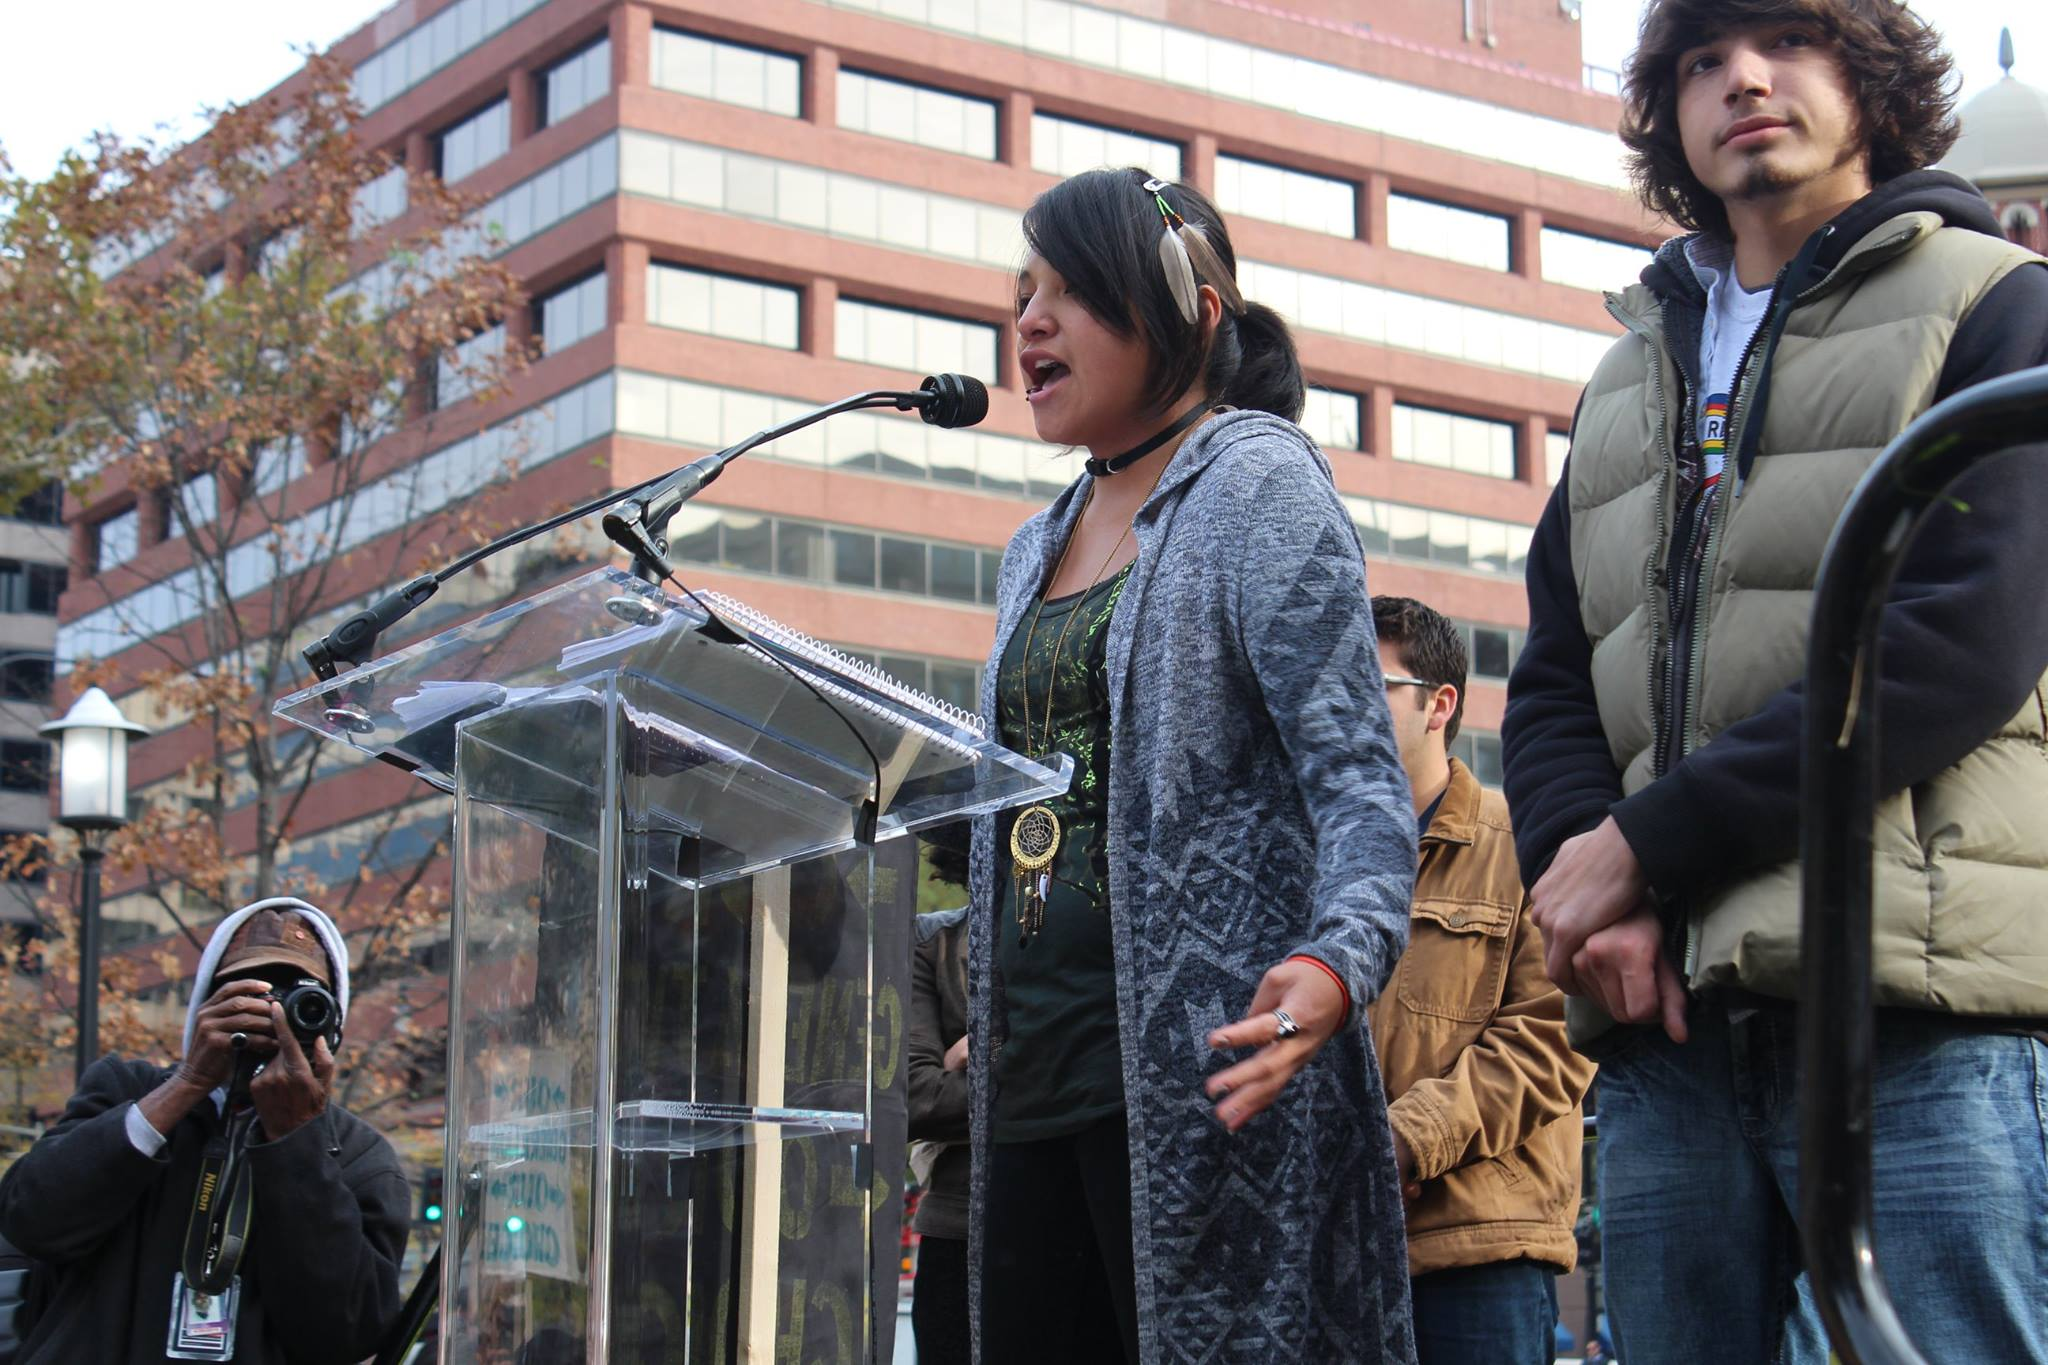 Jasilyn speaking at a protest.